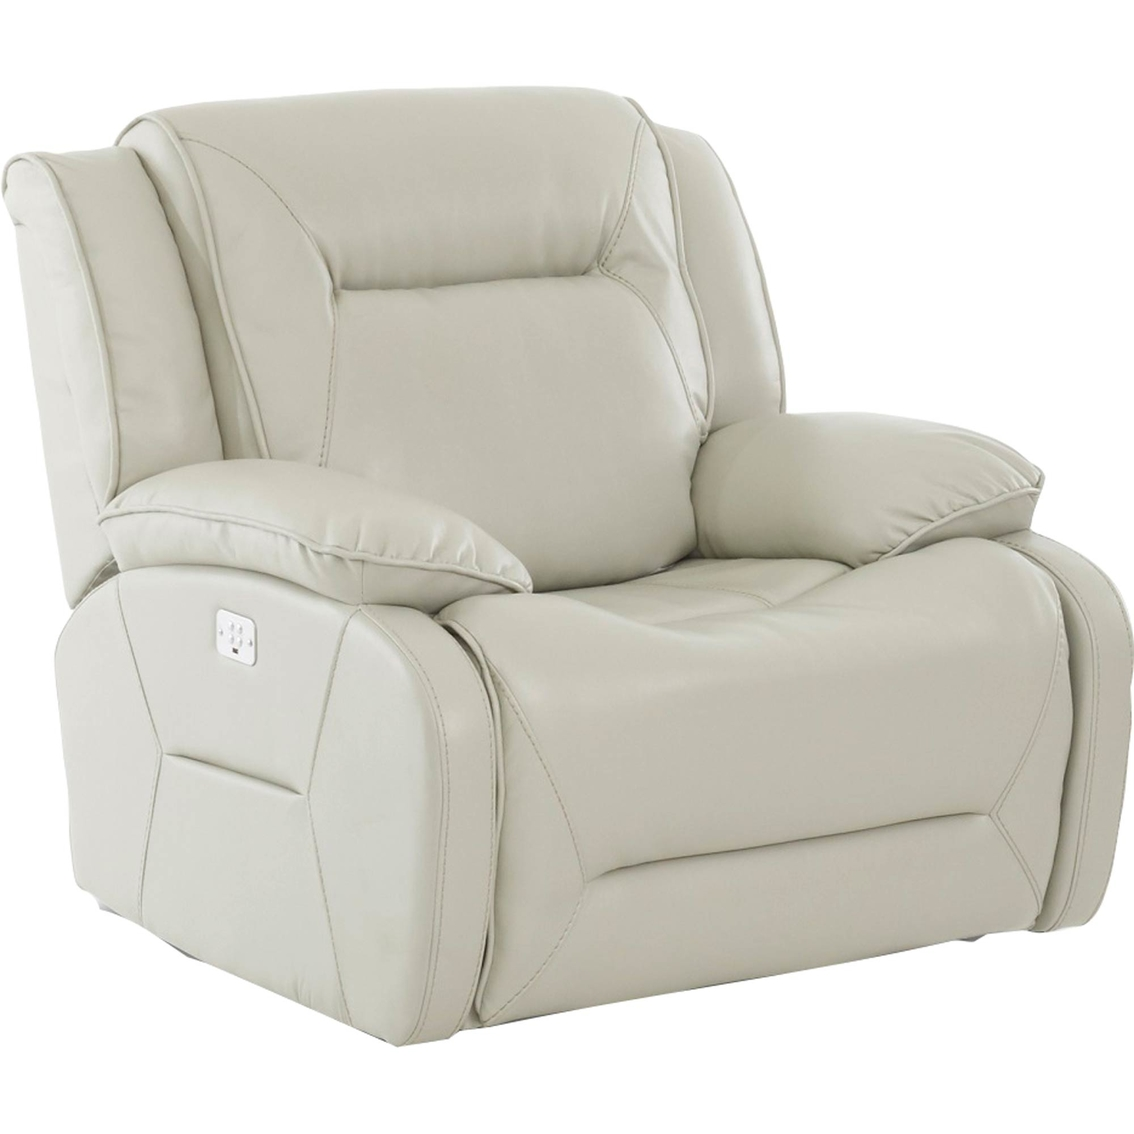 Klaussner Dansby Power Reclining Chair With Power Headrest